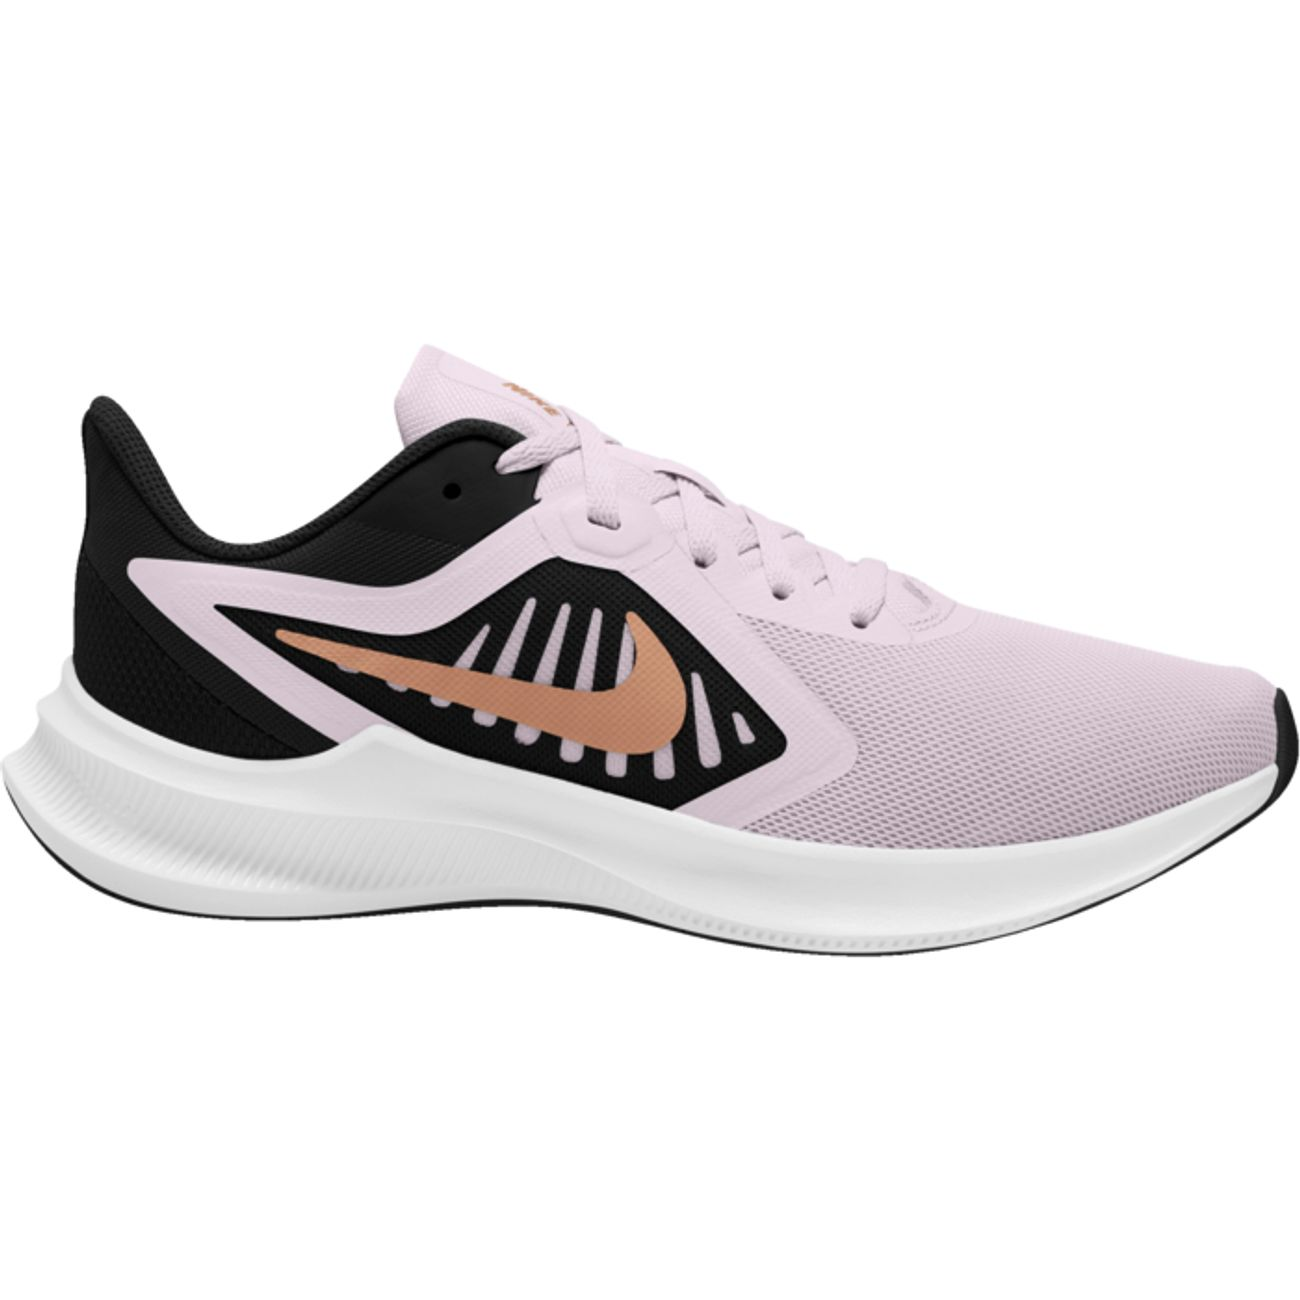 CHAUSSURES BASSES running femme NIKE NIKE DOWNSHIFTER 10 W